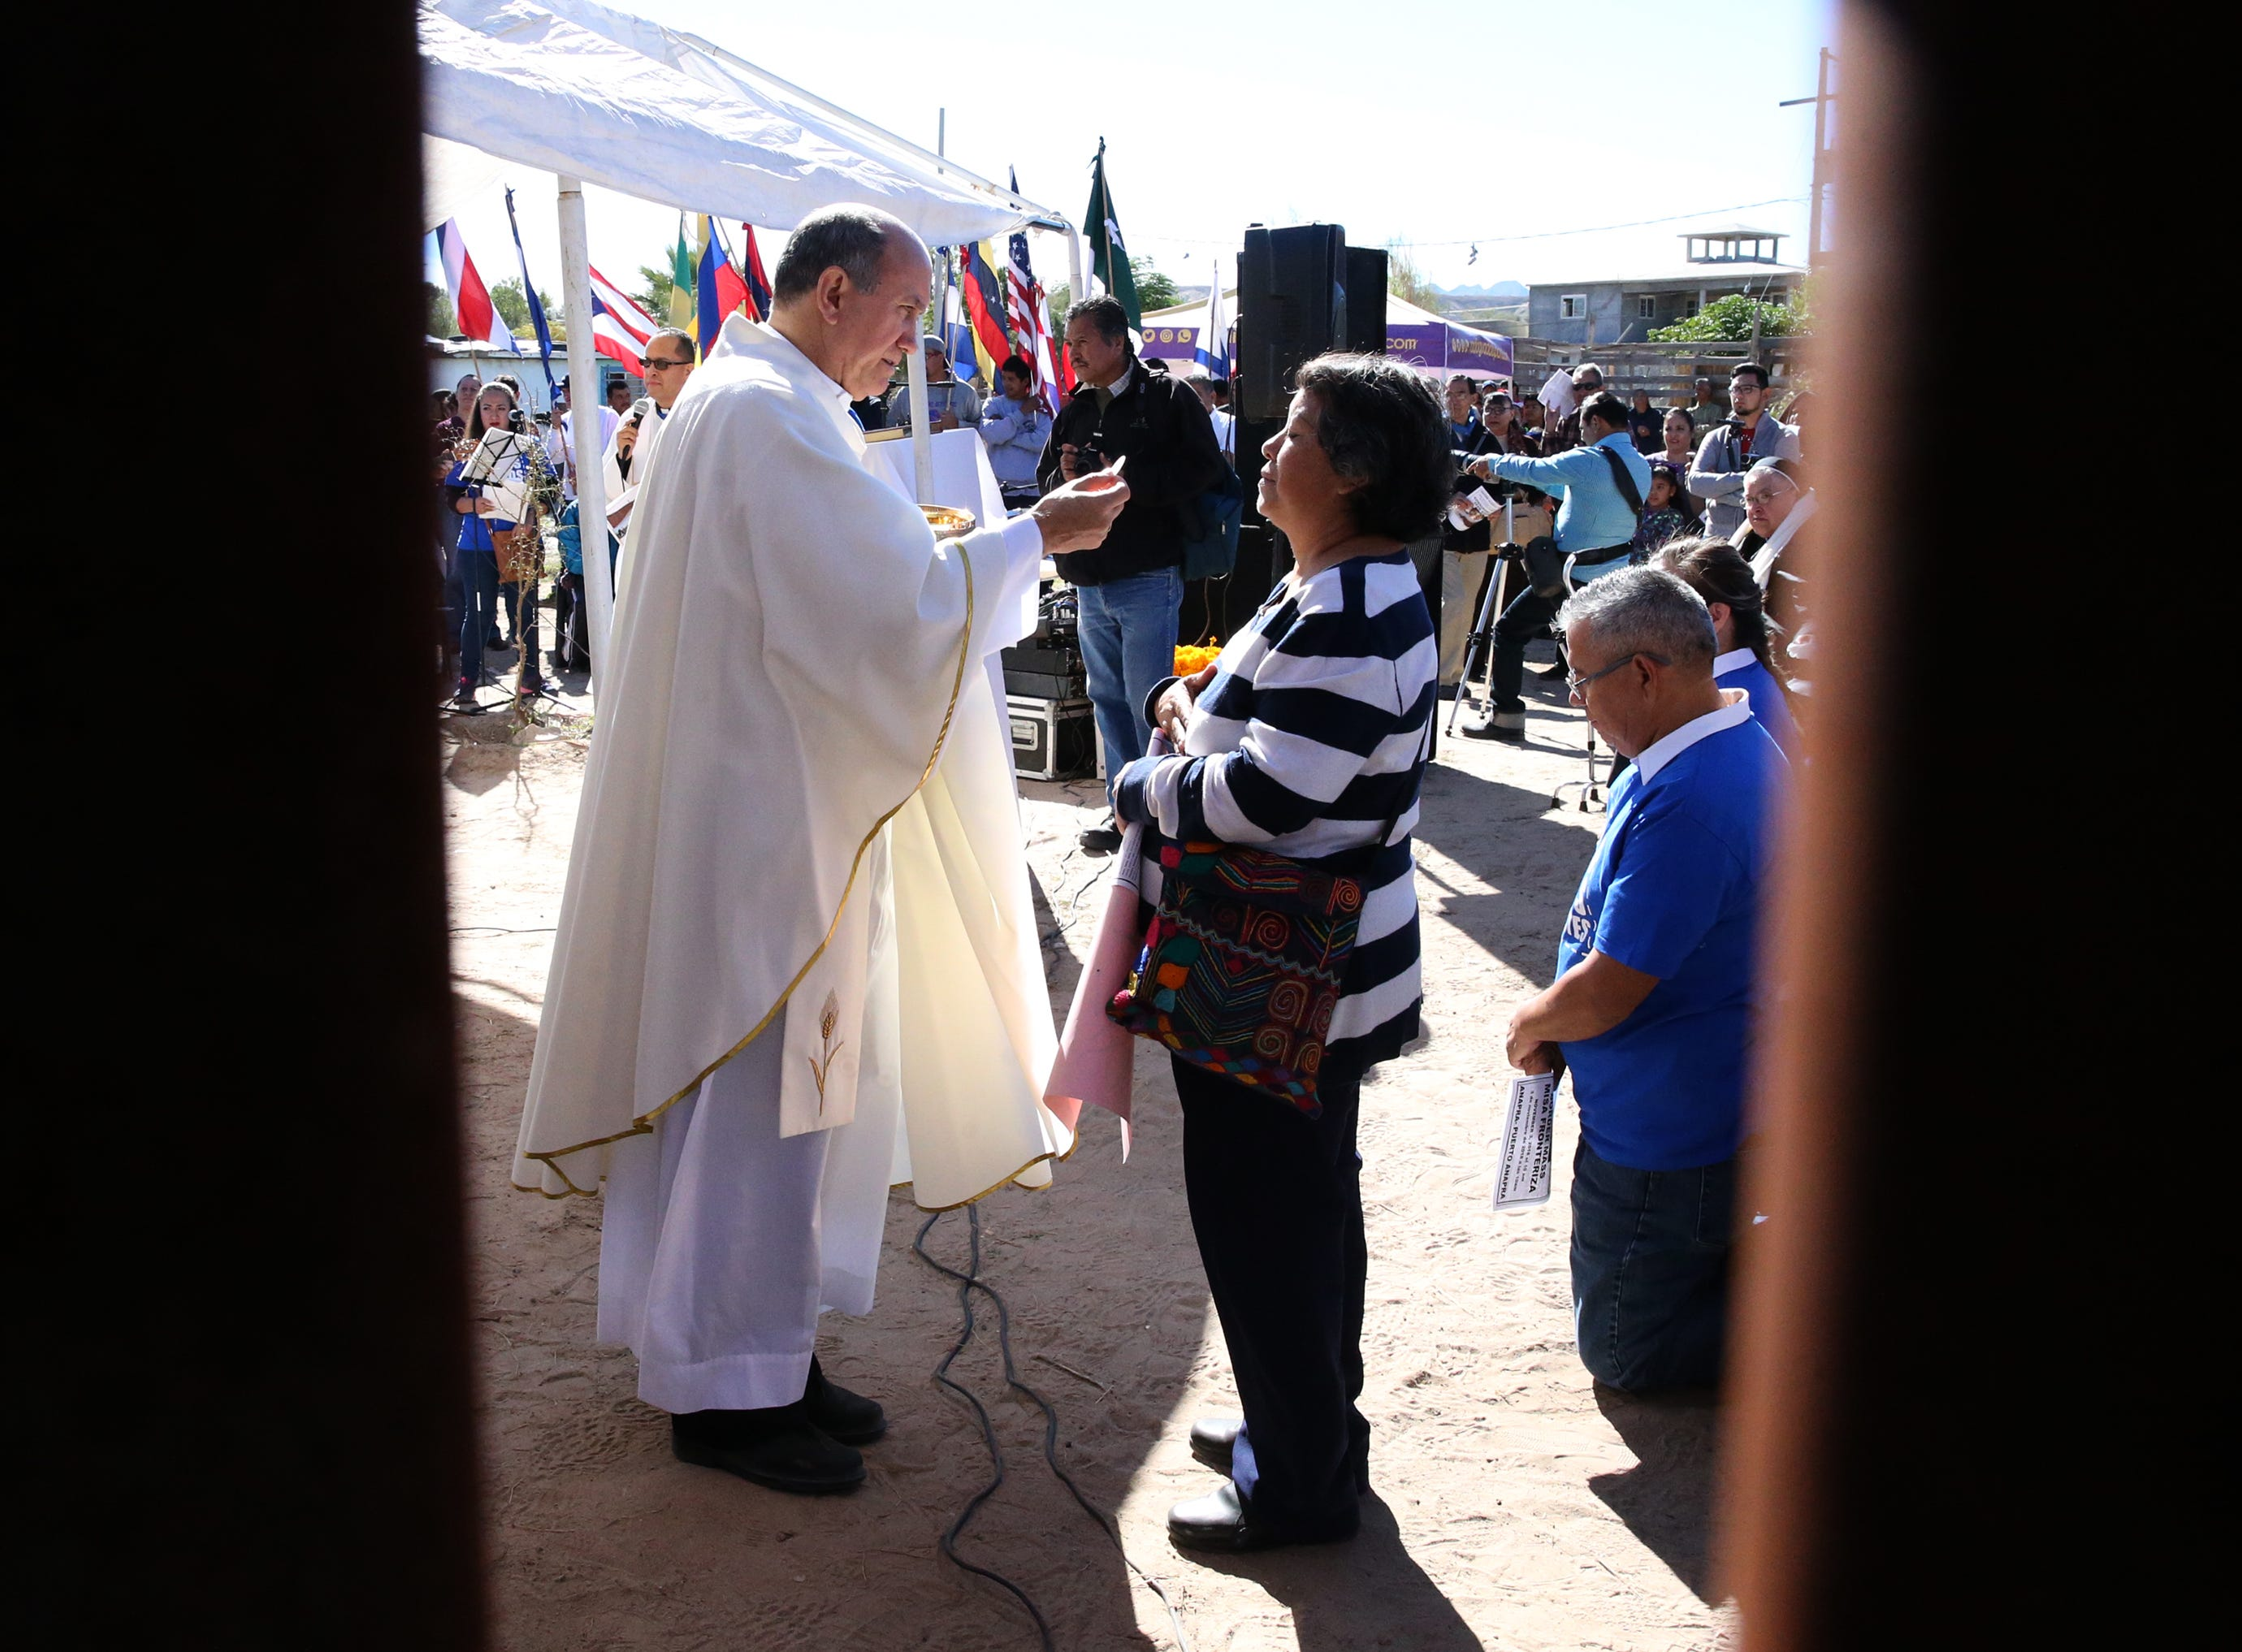 Juarez Catholic clergy administer communion to the faithful on the Juarez side of the border fence Saturday.